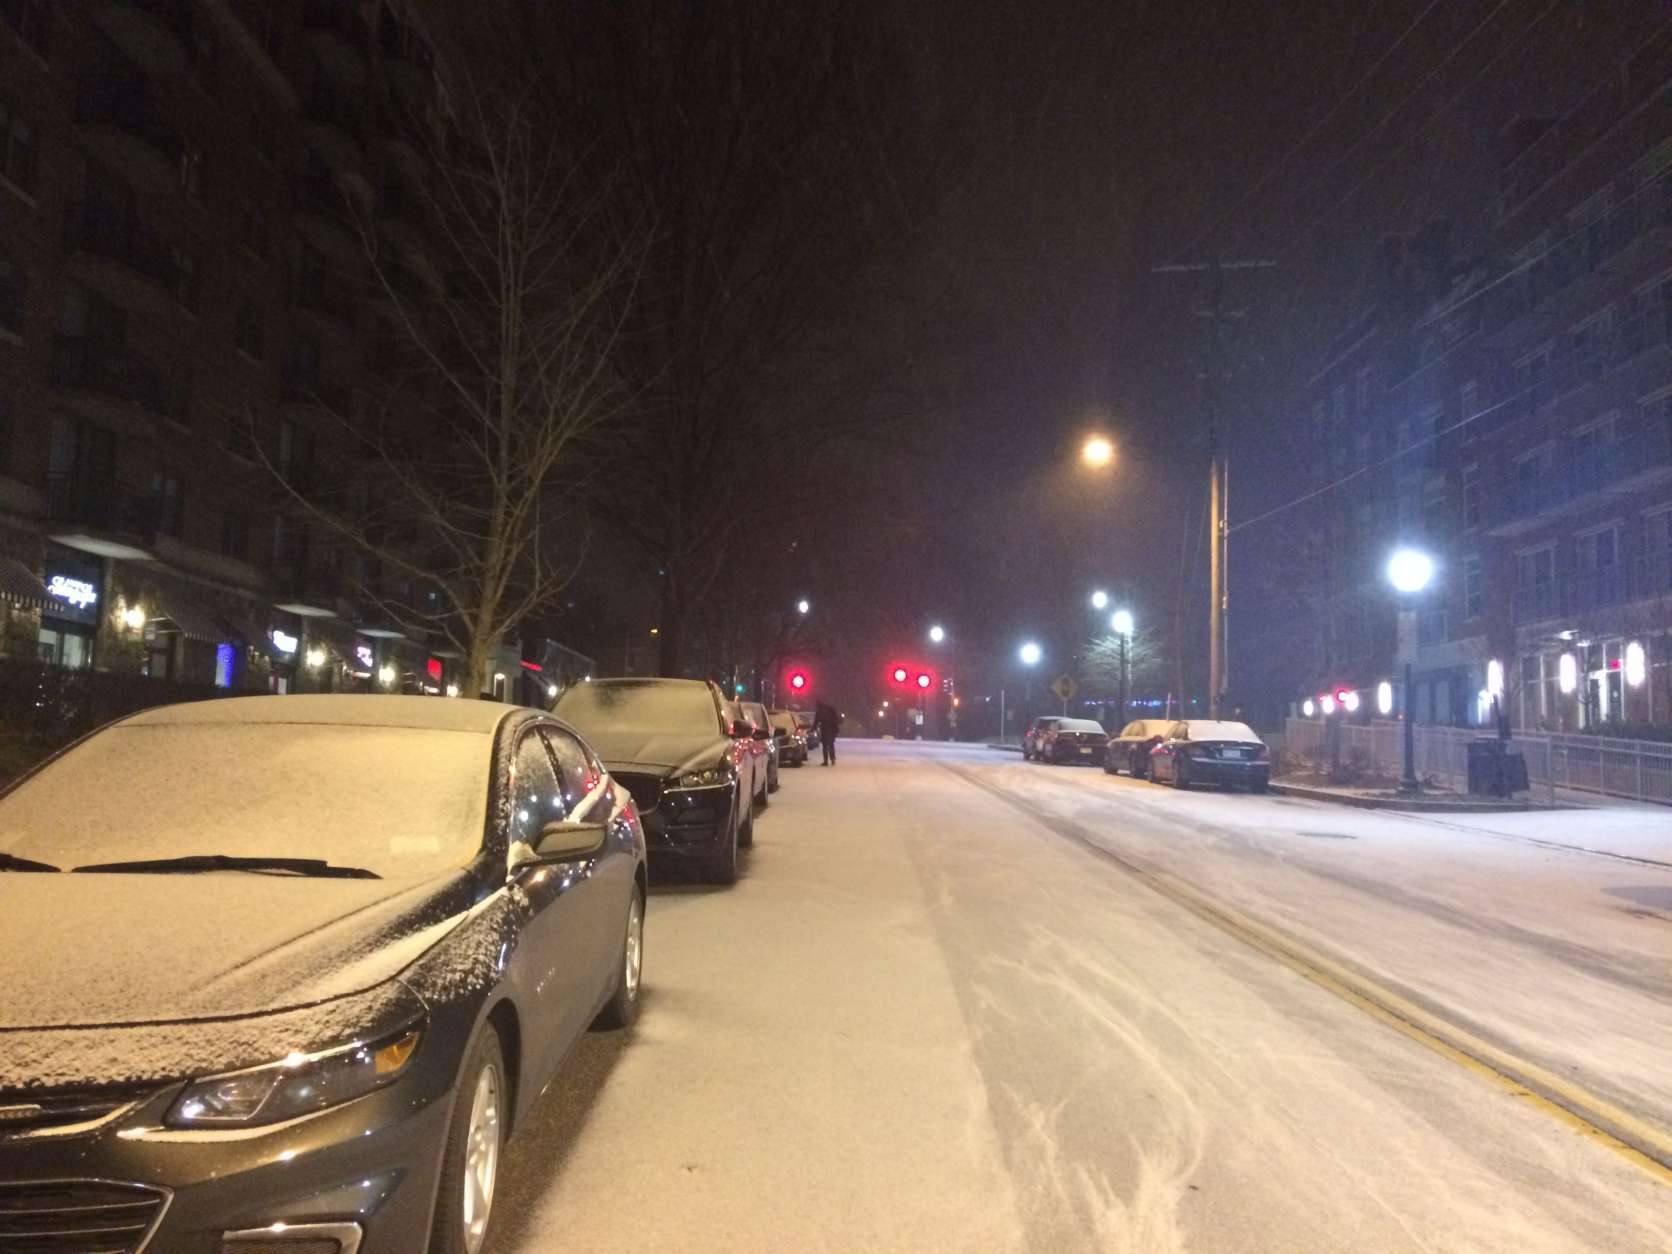 Snow falls in Northwest D.C. on Saturday, Dec. 30, 2017, following one of the the coldest days of year. (WTOP/Abigail Constantino)